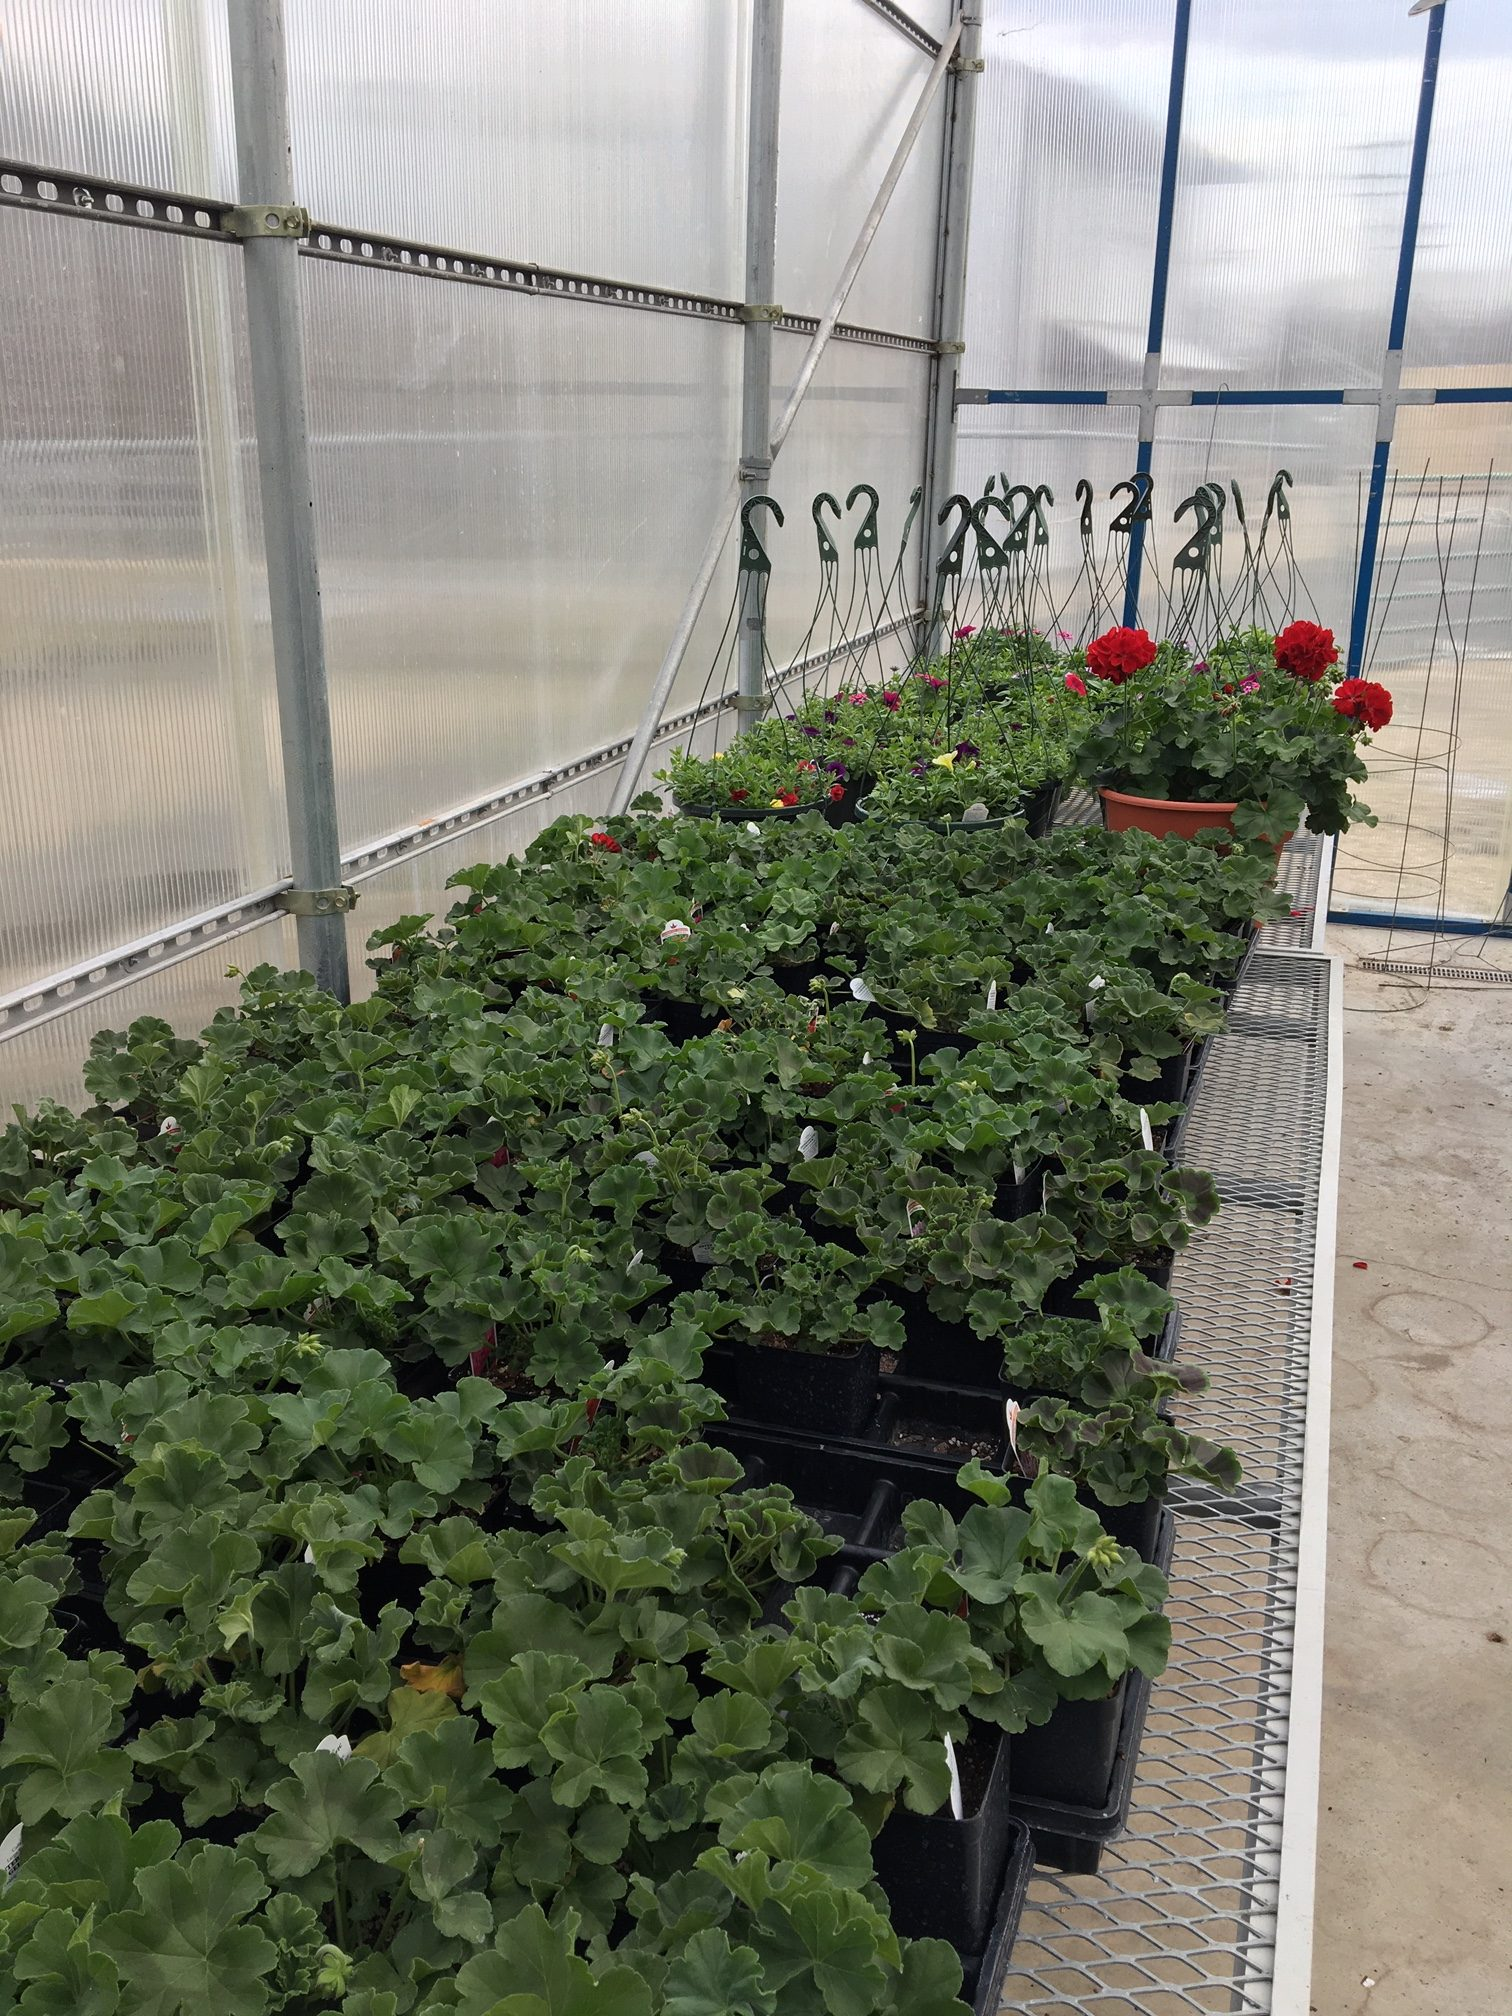 The school greenhouse in De Soto is currently housing around 140 hanging baskets, 125 geraniums and 5,000 bedding plants. The plants will be sold this May in a format to be determined due to the school closure.